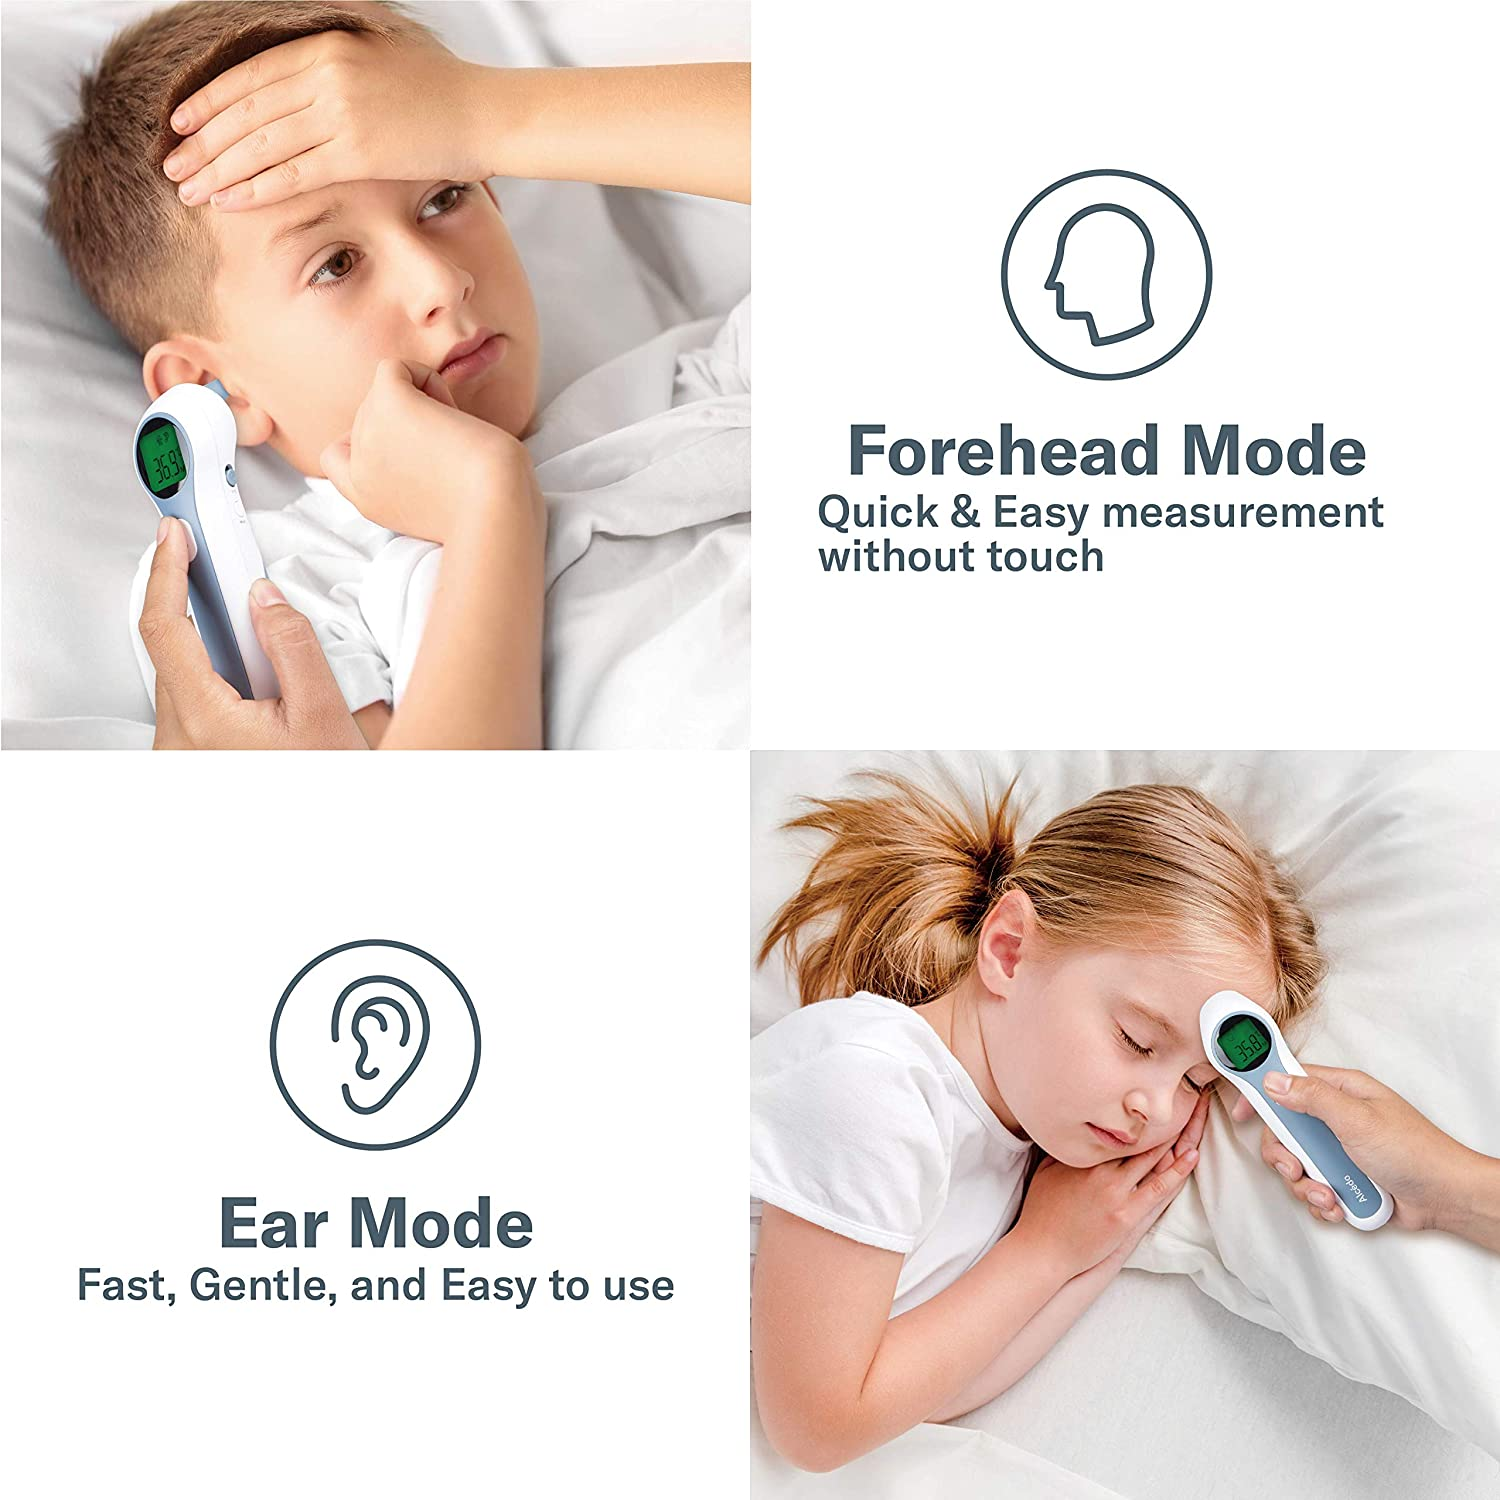 Alcedo Forehead and Ear Thermometer for Adults, Kids, and Baby   Digital Infrared Thermometer for Fever   Touchless, Instant Read, Medical Grade   Pouch and Batteries Included